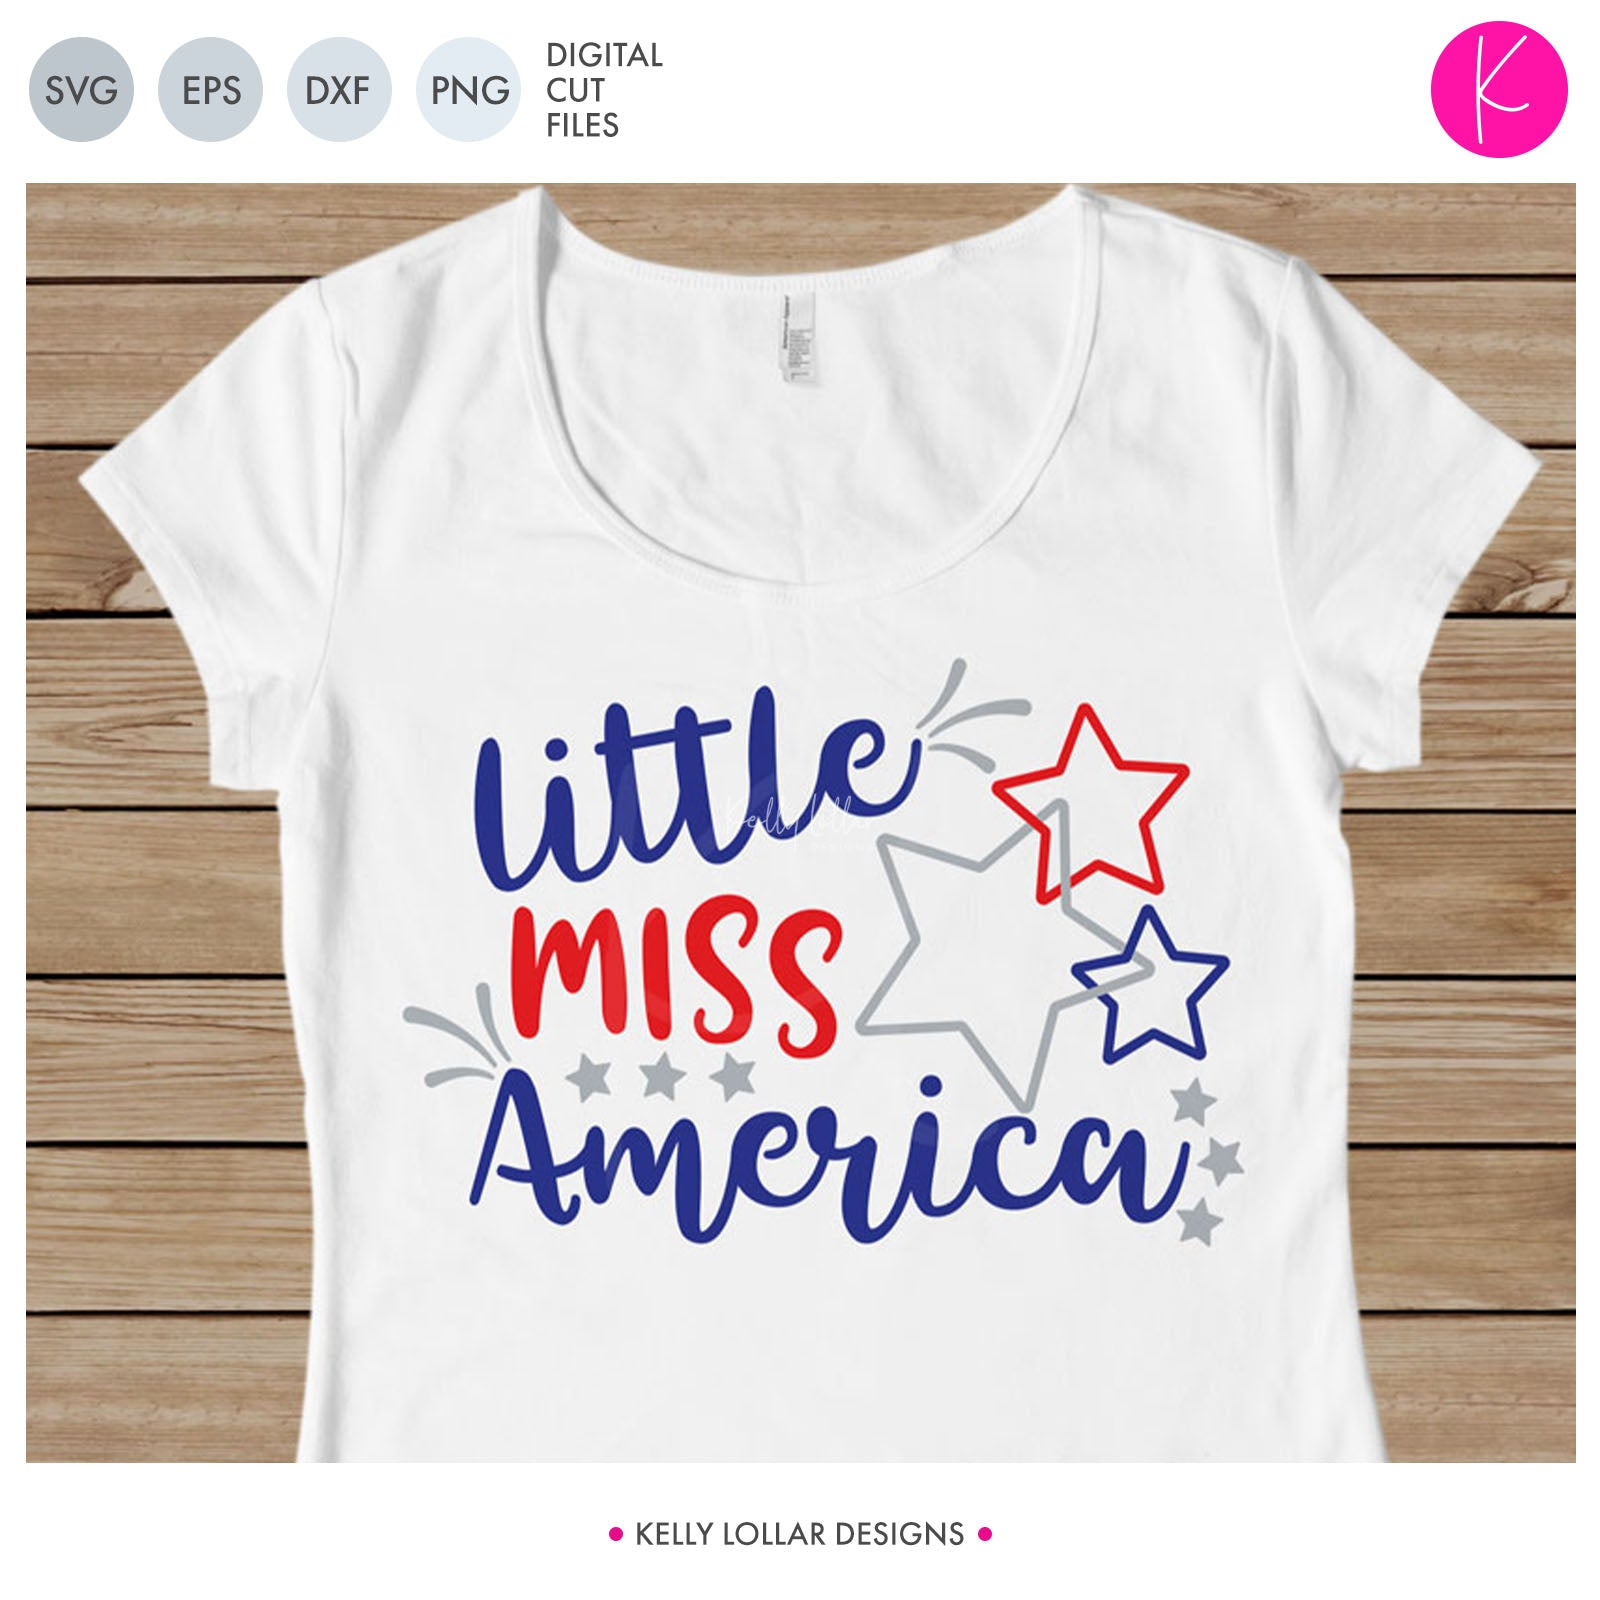 Little Miss and Mr. America | SVG DXF EPS PNG Cut Files Cute Patriotic Quote with Interlocking Stars for Boy and Girl 4th of July Shirts | SVG DXF PNG Cut Files Choose from Individual Versions or the Pack INDIVIDUAL 2 files for each format